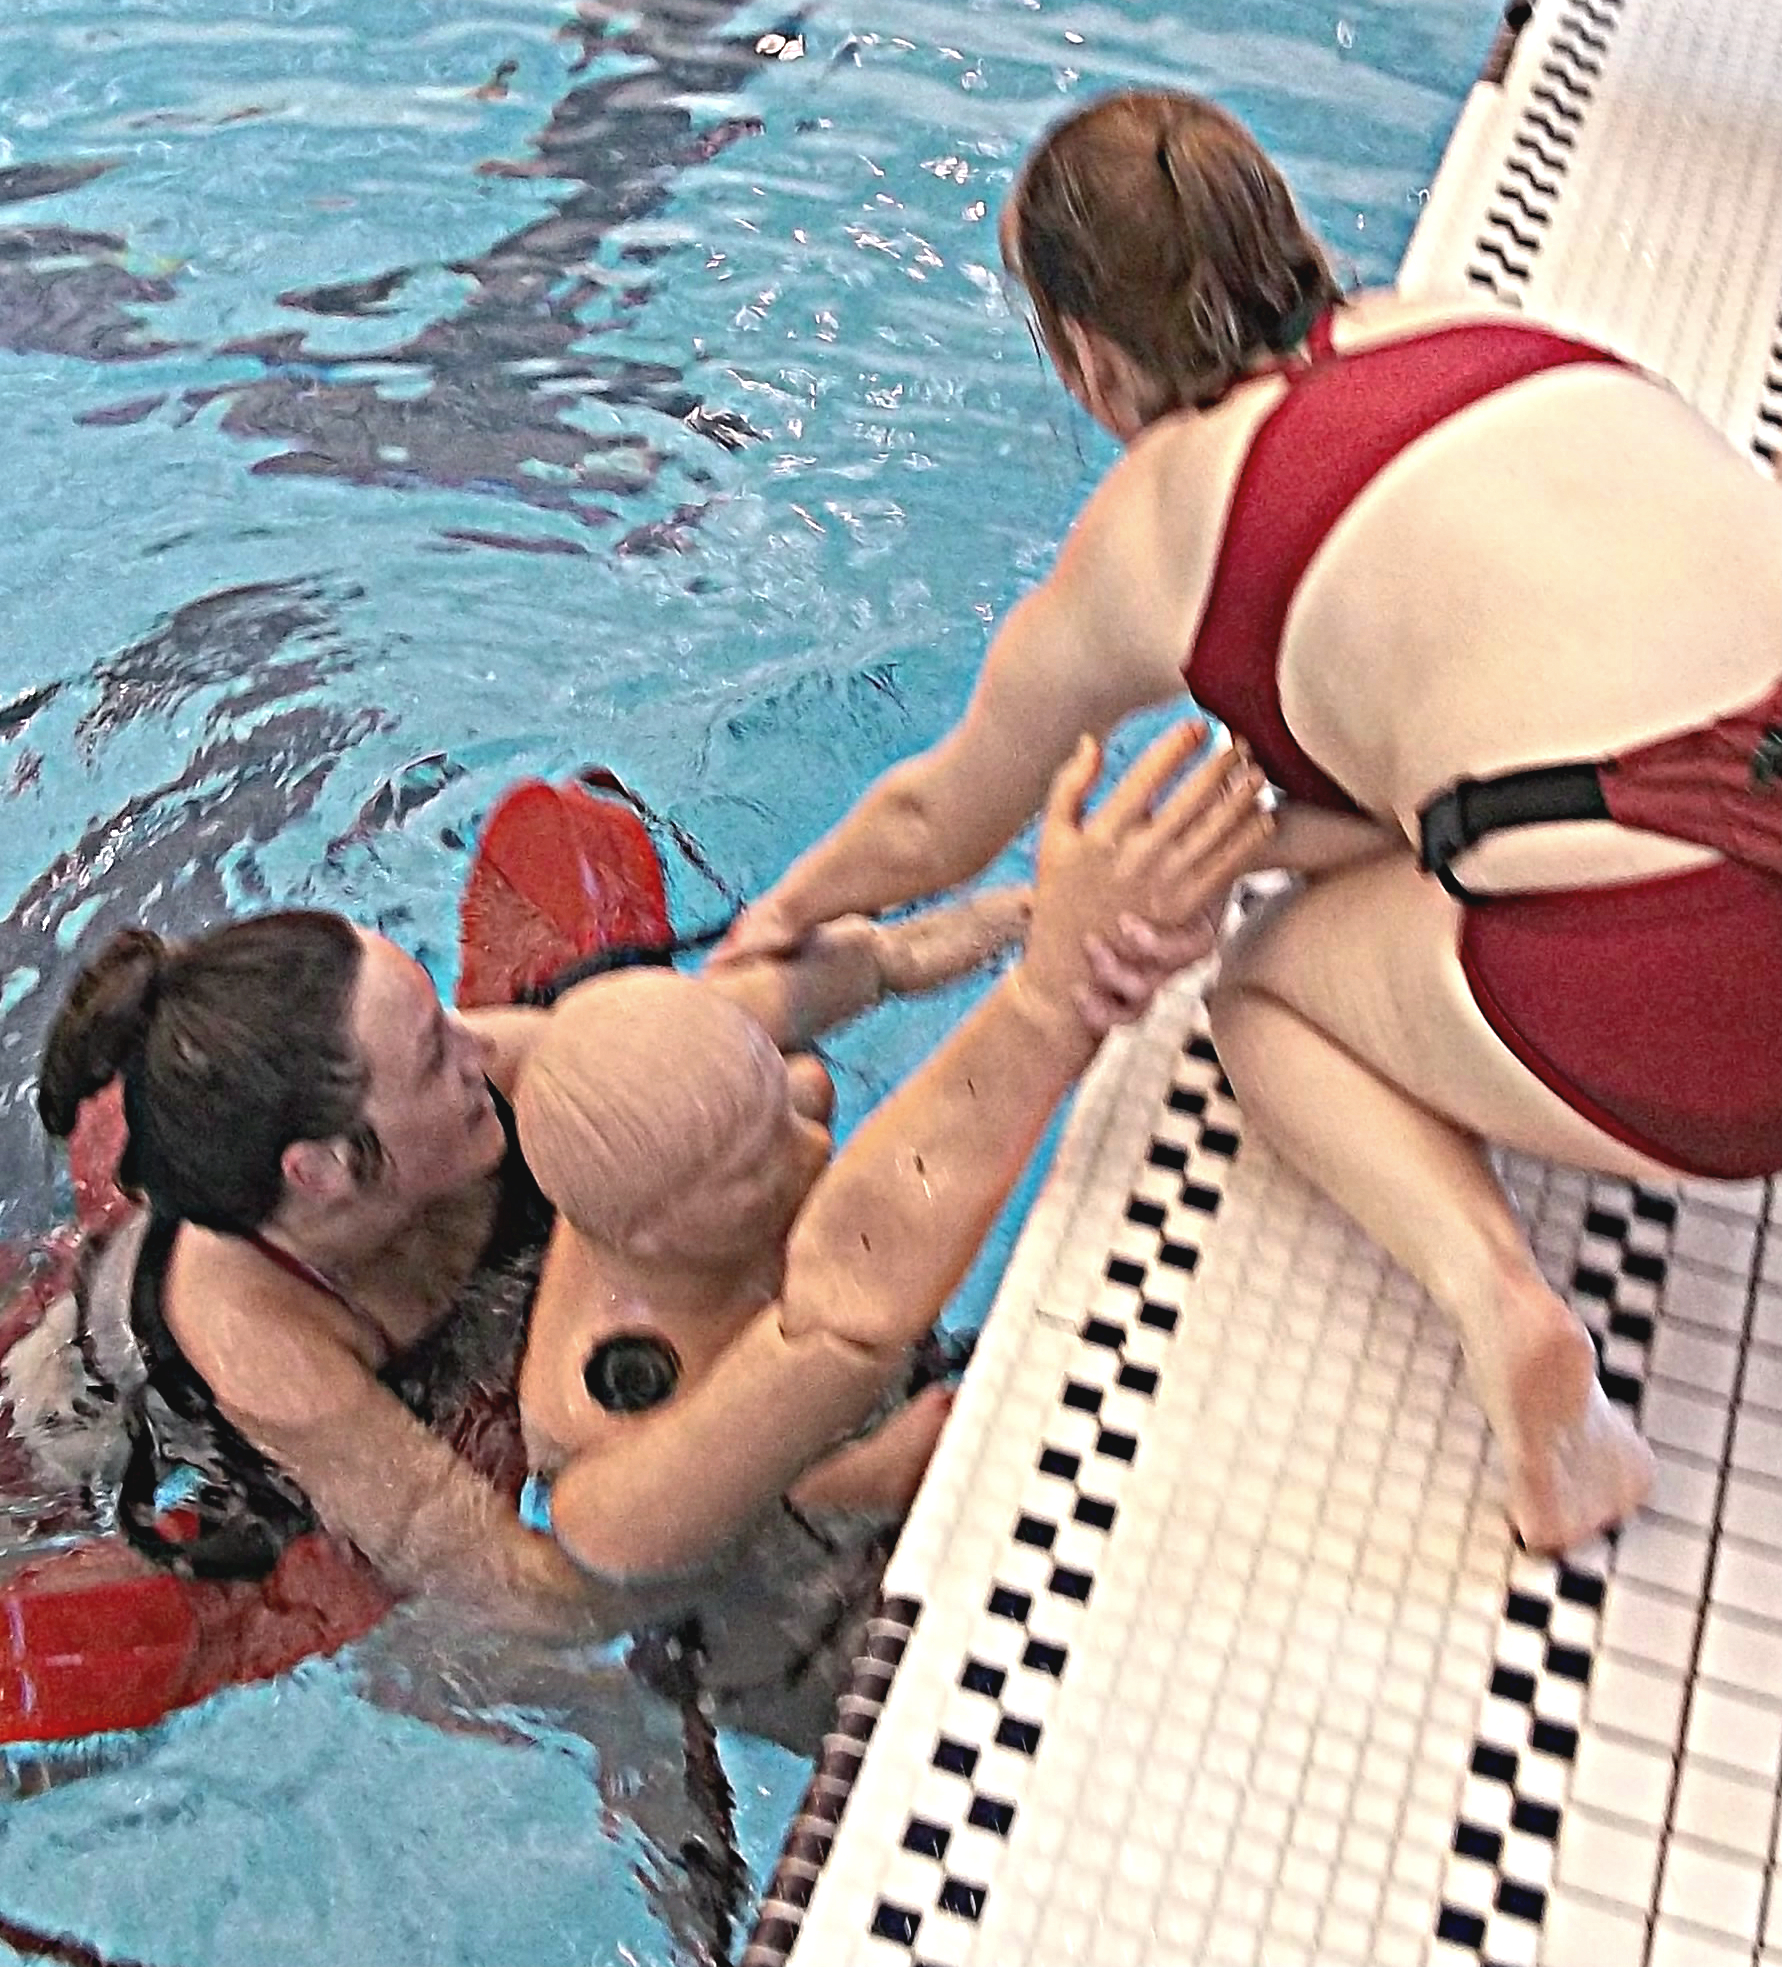 Two lifeguards demonstrating how to save a drowning victim